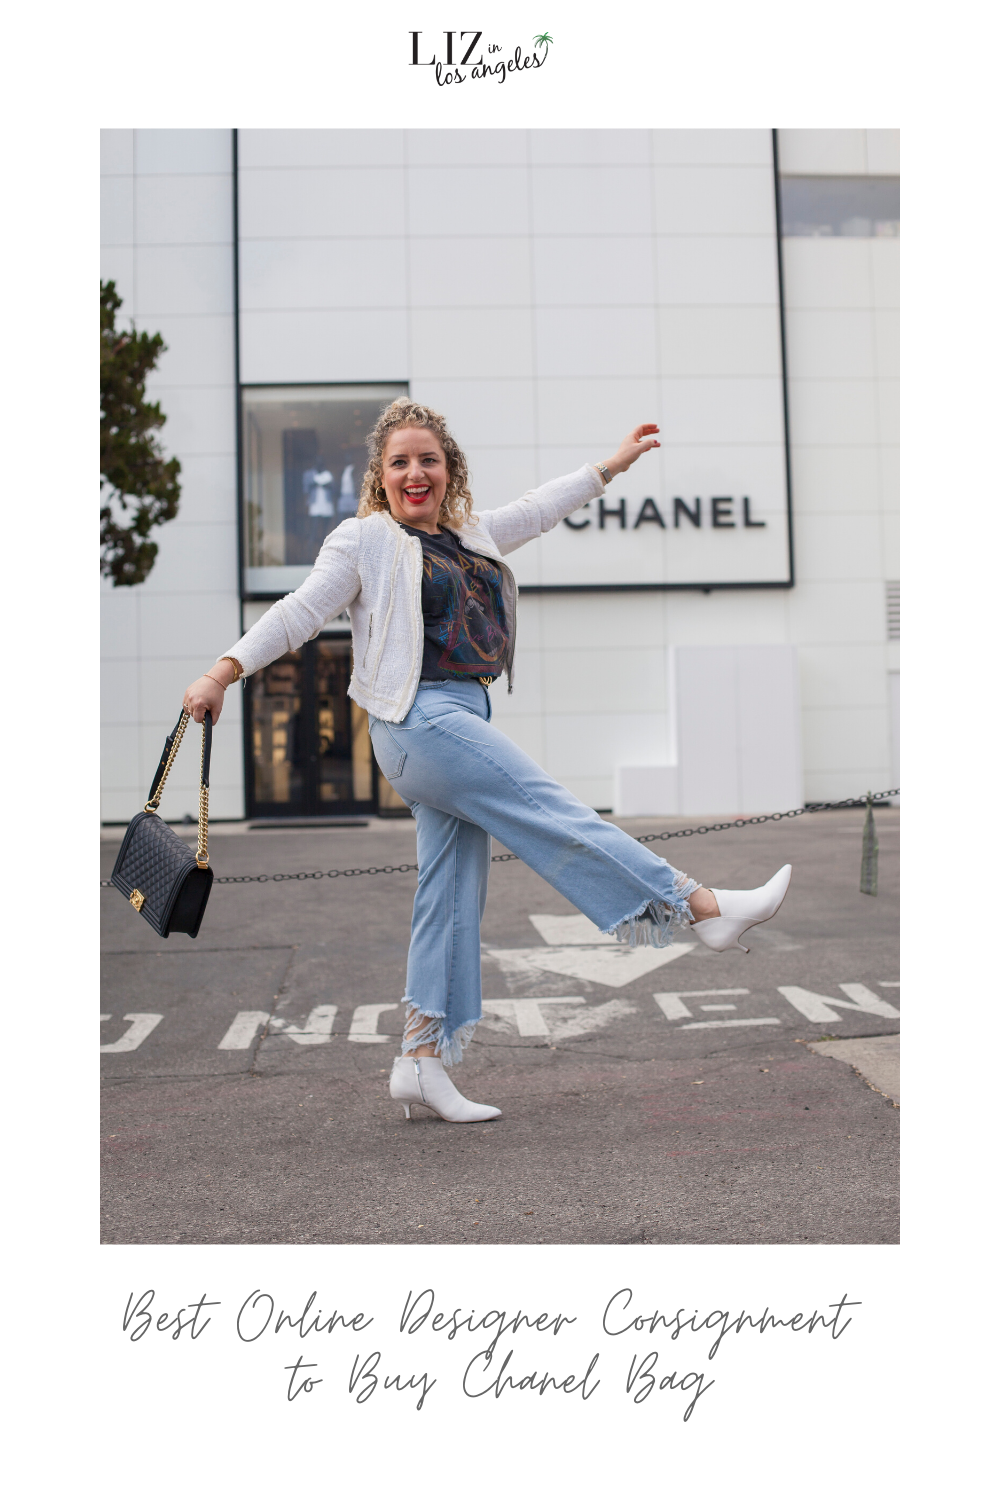 The Best Online Designer Consignment Shops to Buy your Favorite Chanel Bag, a blog post by Liz in Los Angeles, Los Angeles Lifestyle Blogger: an image of a blond woman standing in front of the Chanel store in Beverly Hills